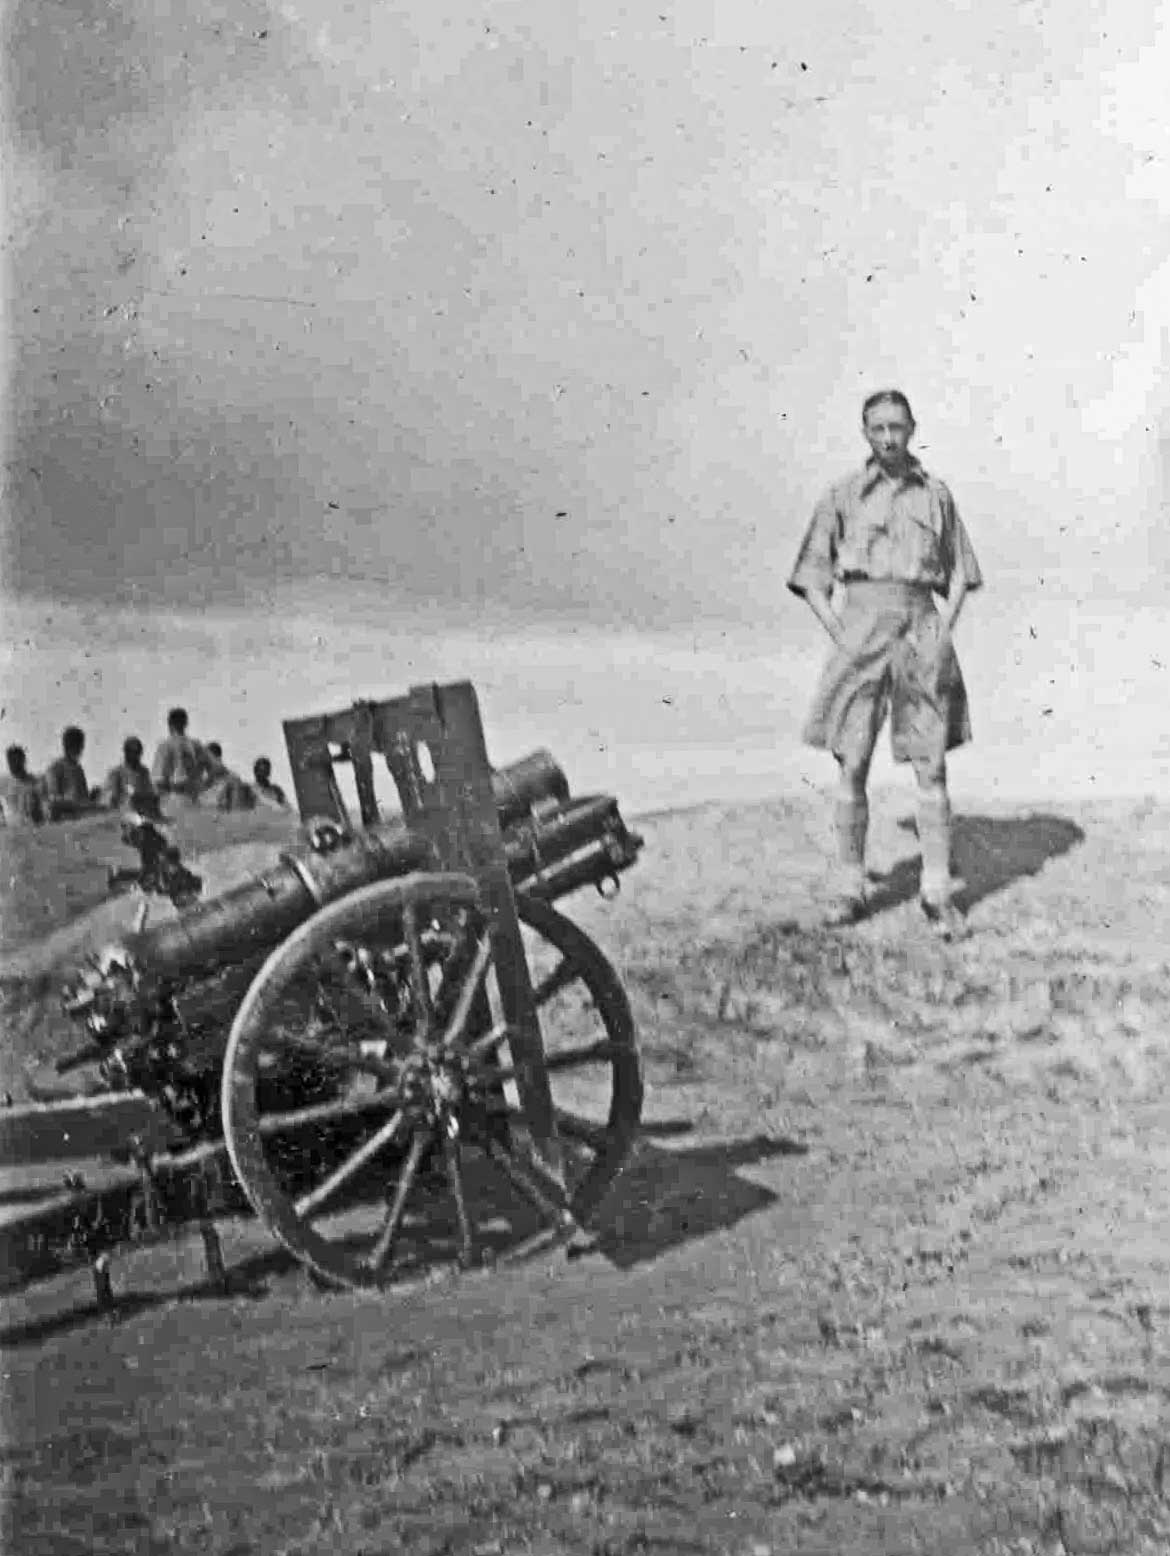 Jock and 3.7 inch mountain Howitzer